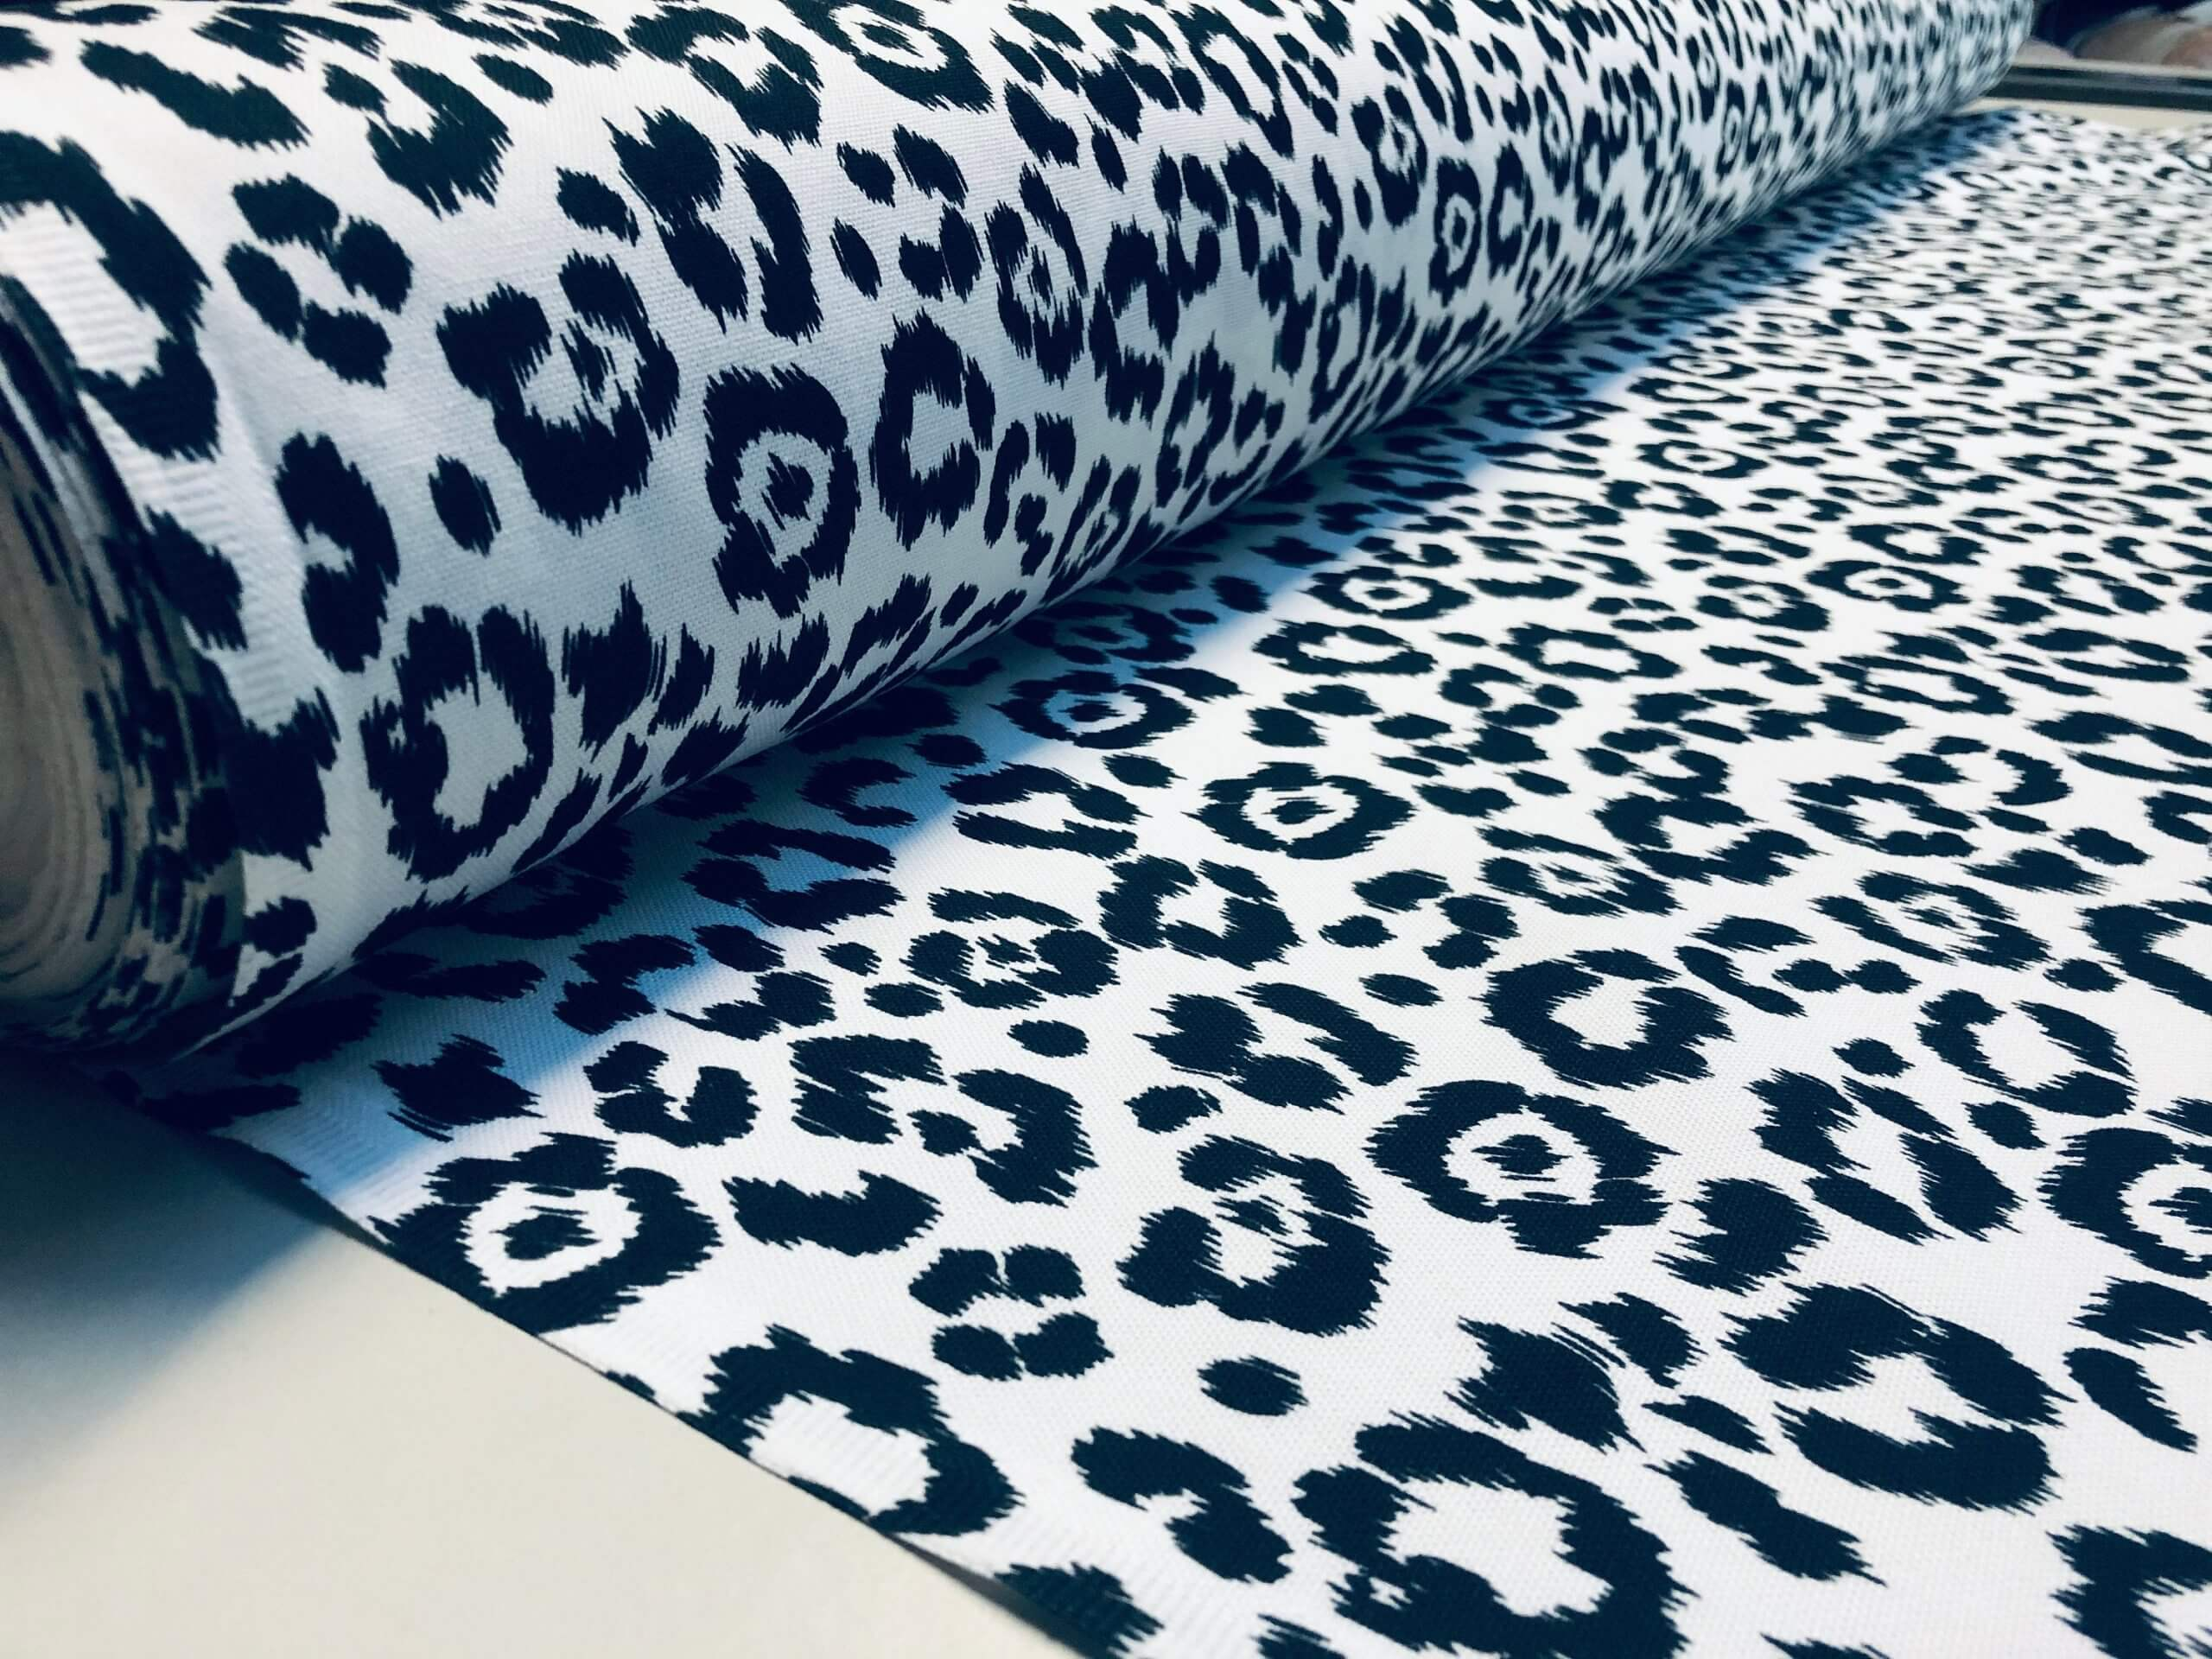 leopard-print-cotton-fabric-for-curtains-upholstery-panther-animal-fur-digital-print-material-55-wide-5e0e5eb21.jpg